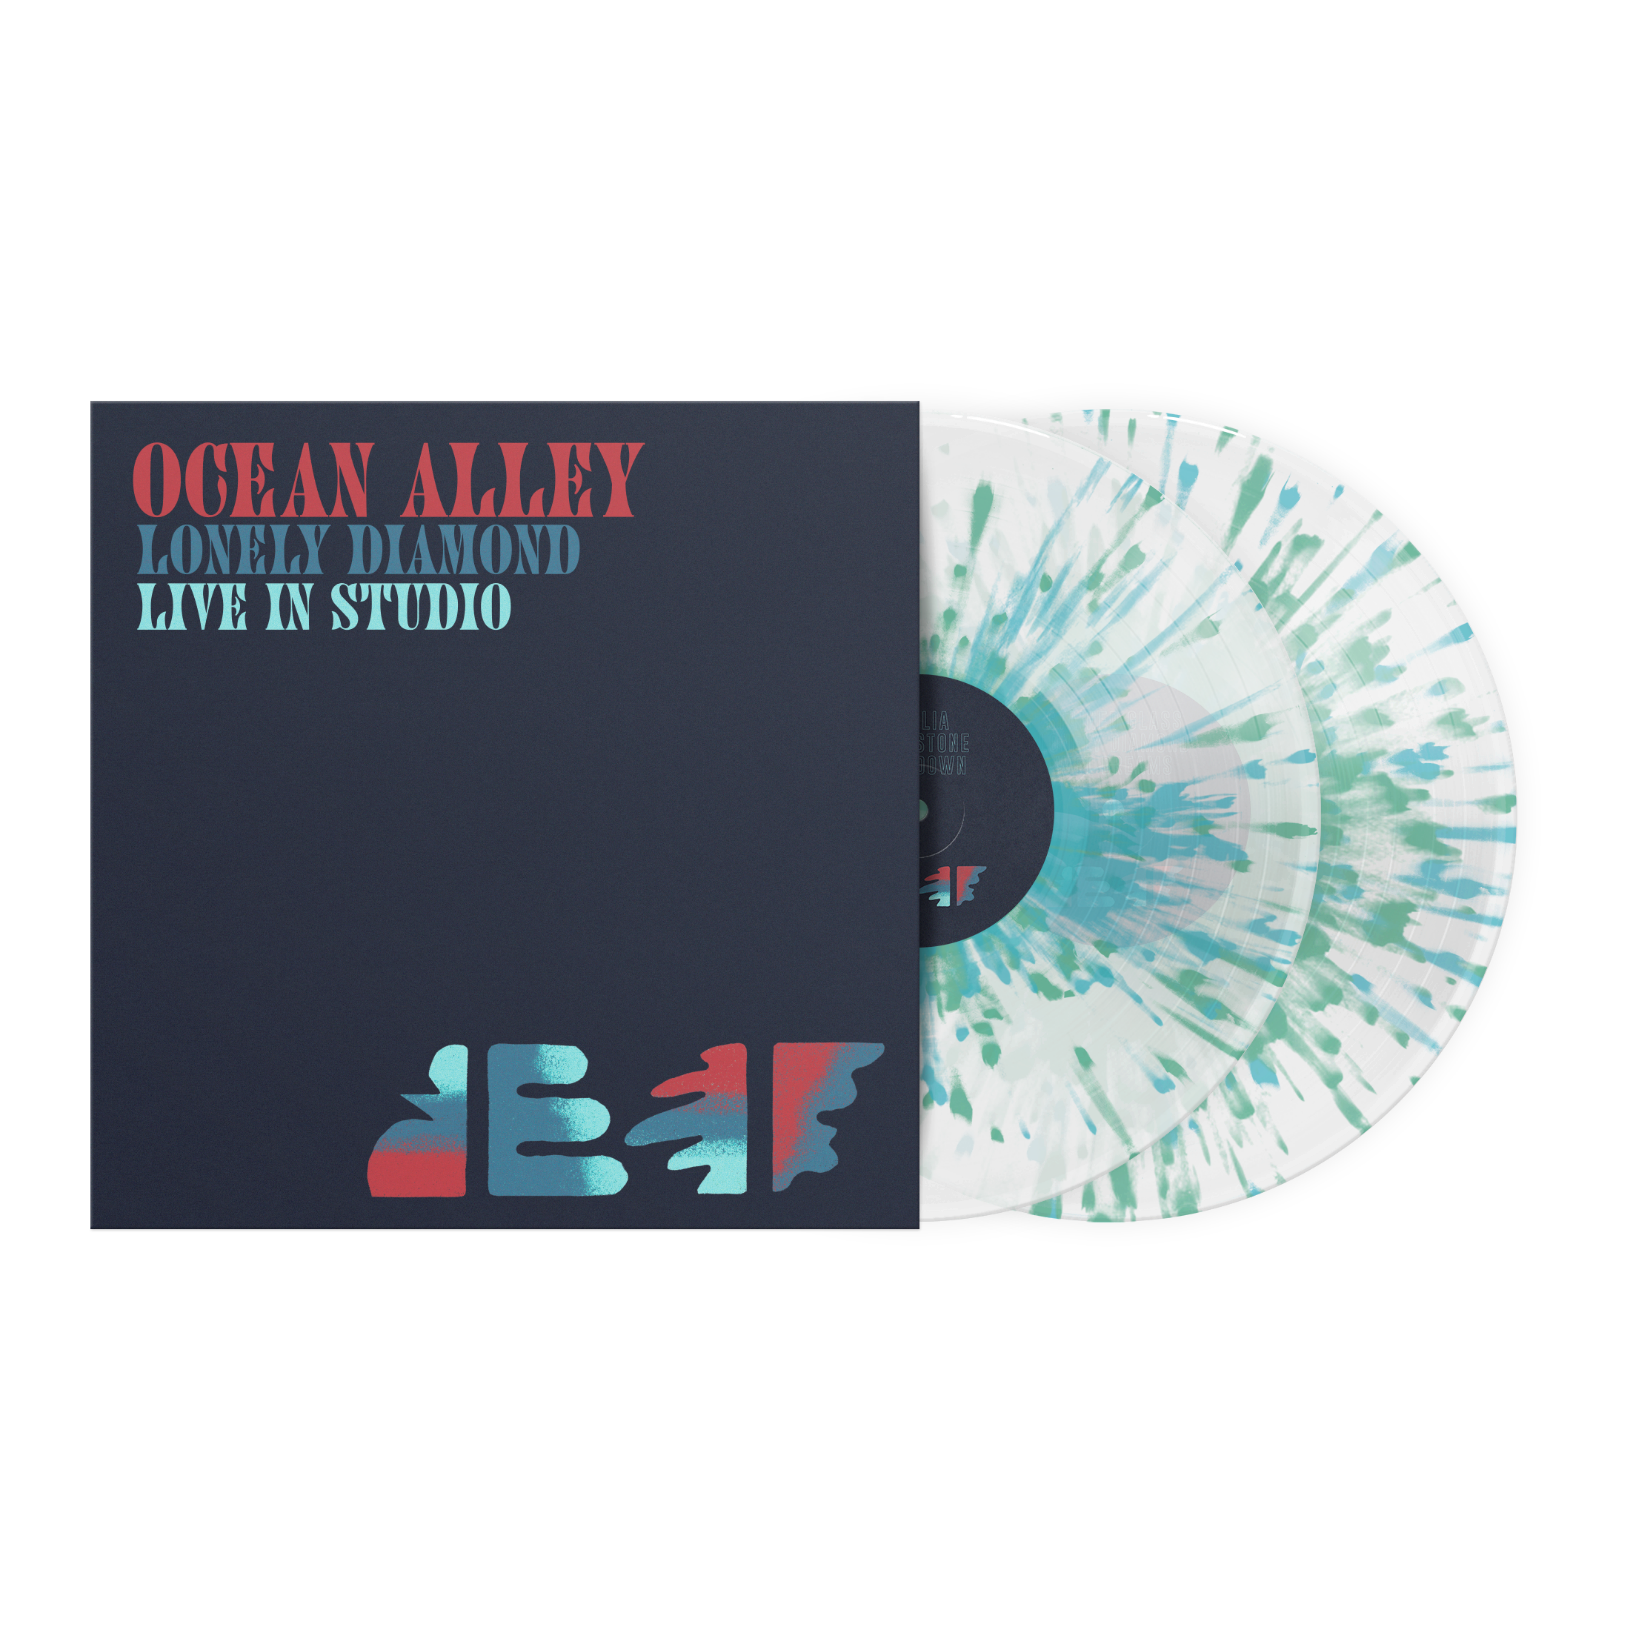 Ocean Alley for Record Store Day